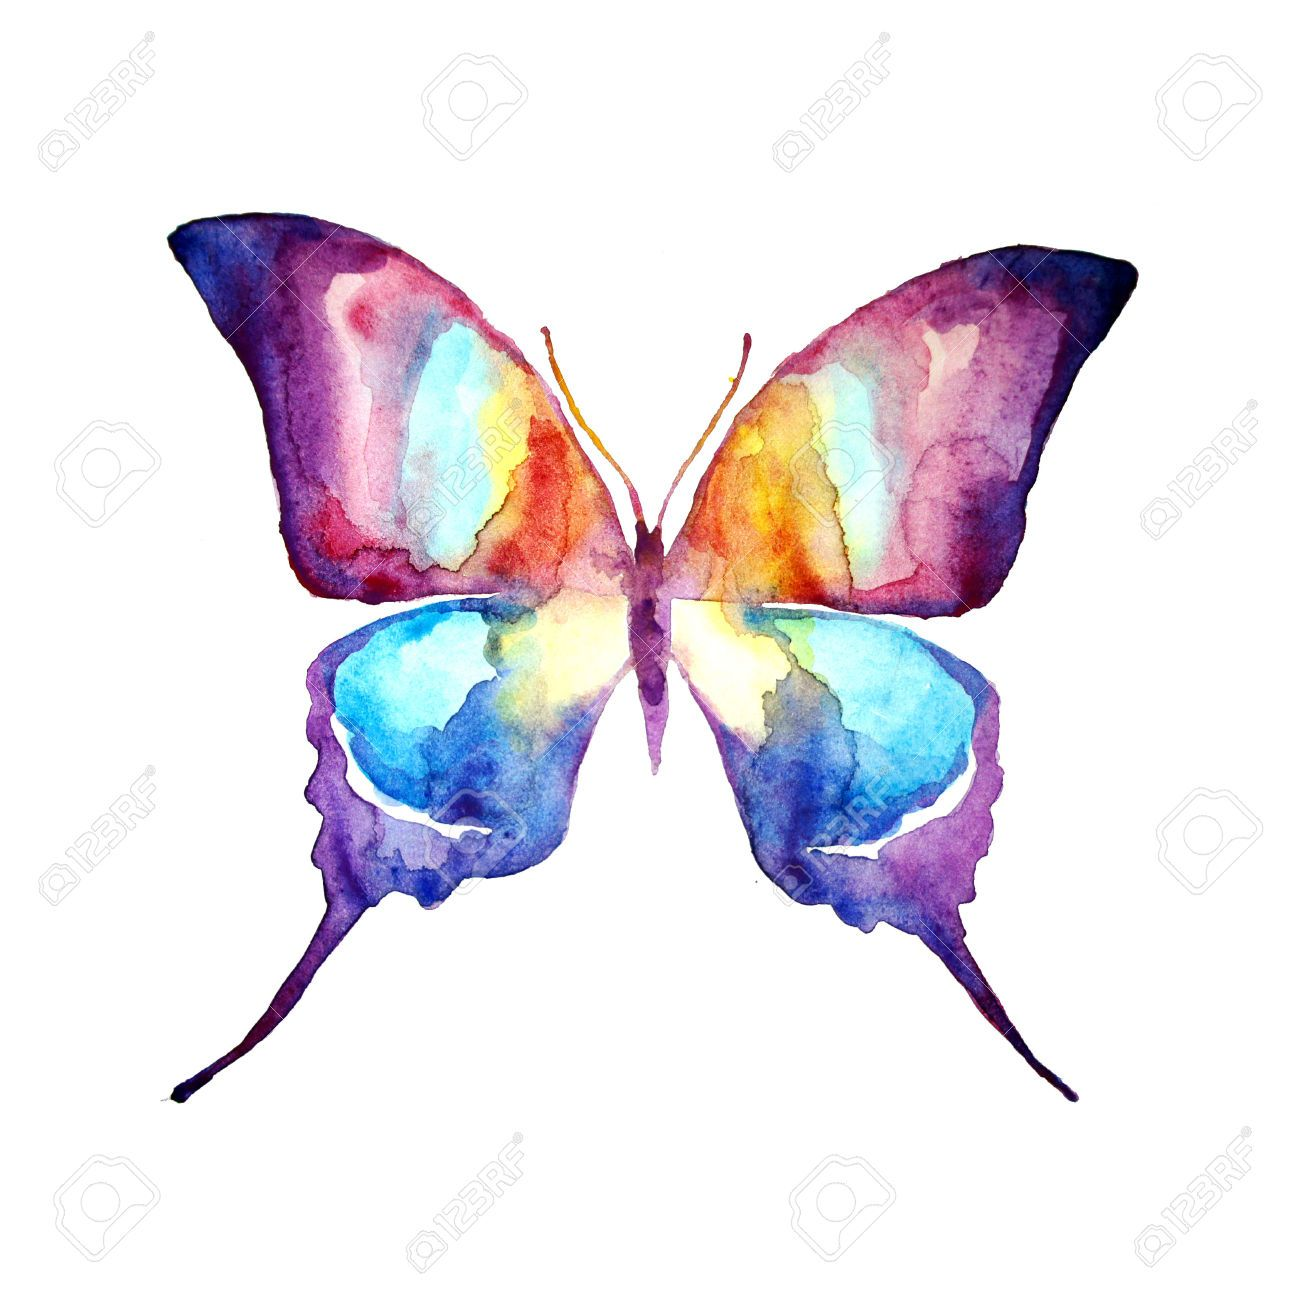 Butterflywatercolor Design Stock Photo Picture And Royalty Free